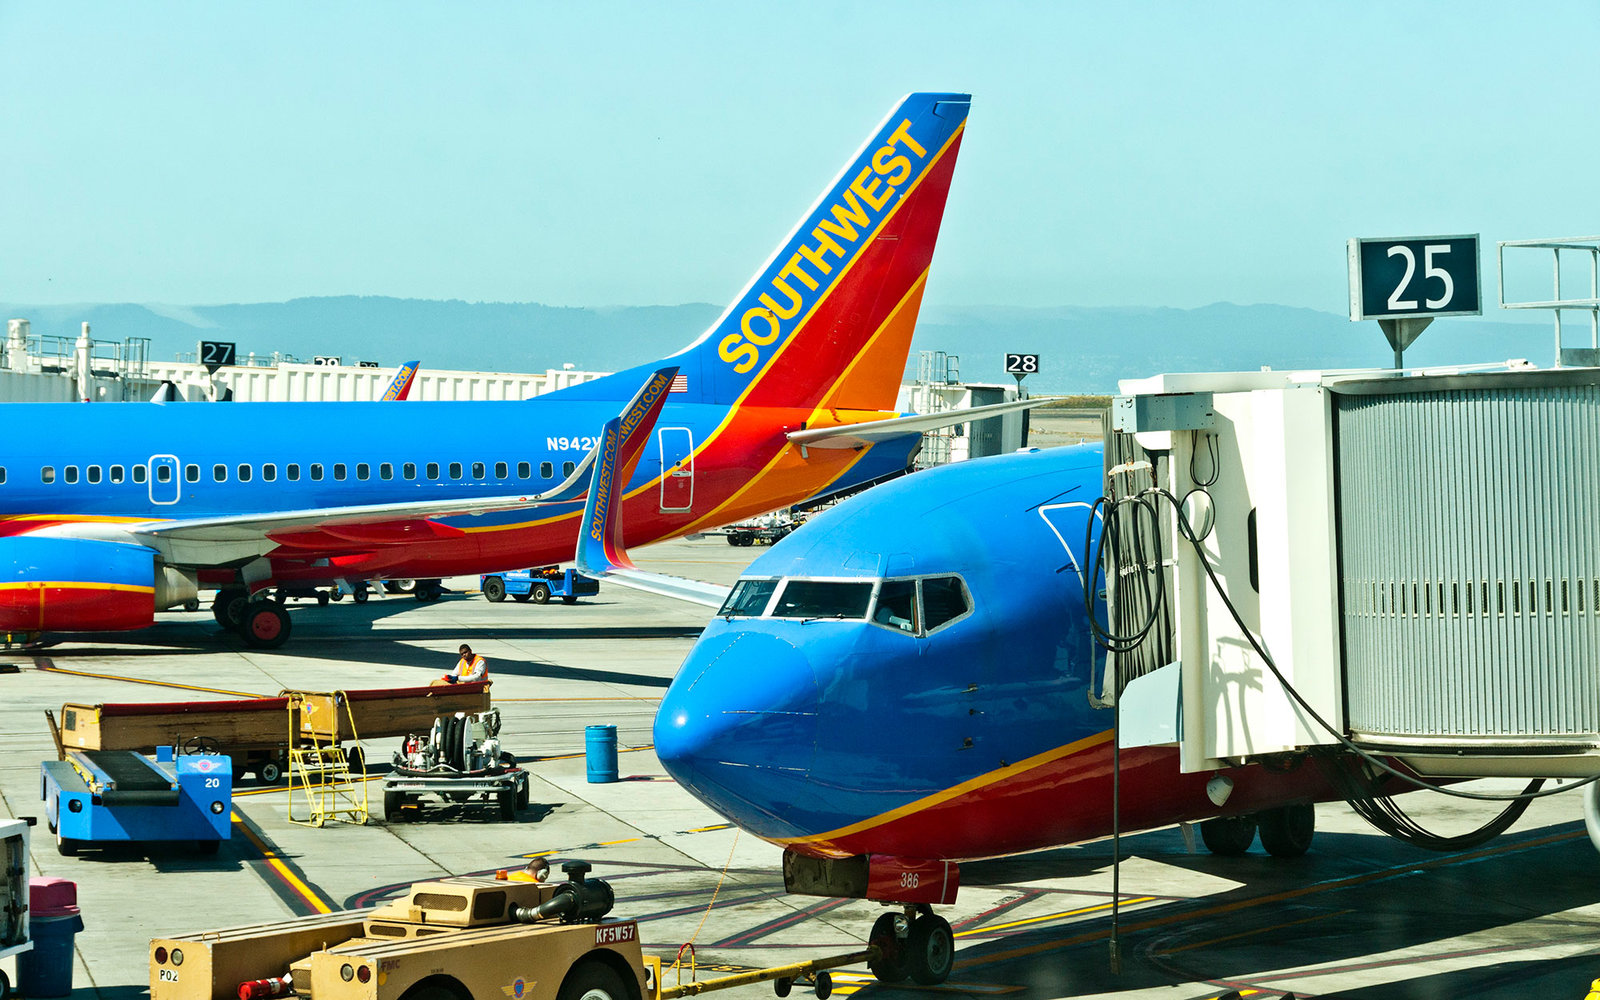 Get Free Flights with Southwest Airlines Companion Pass